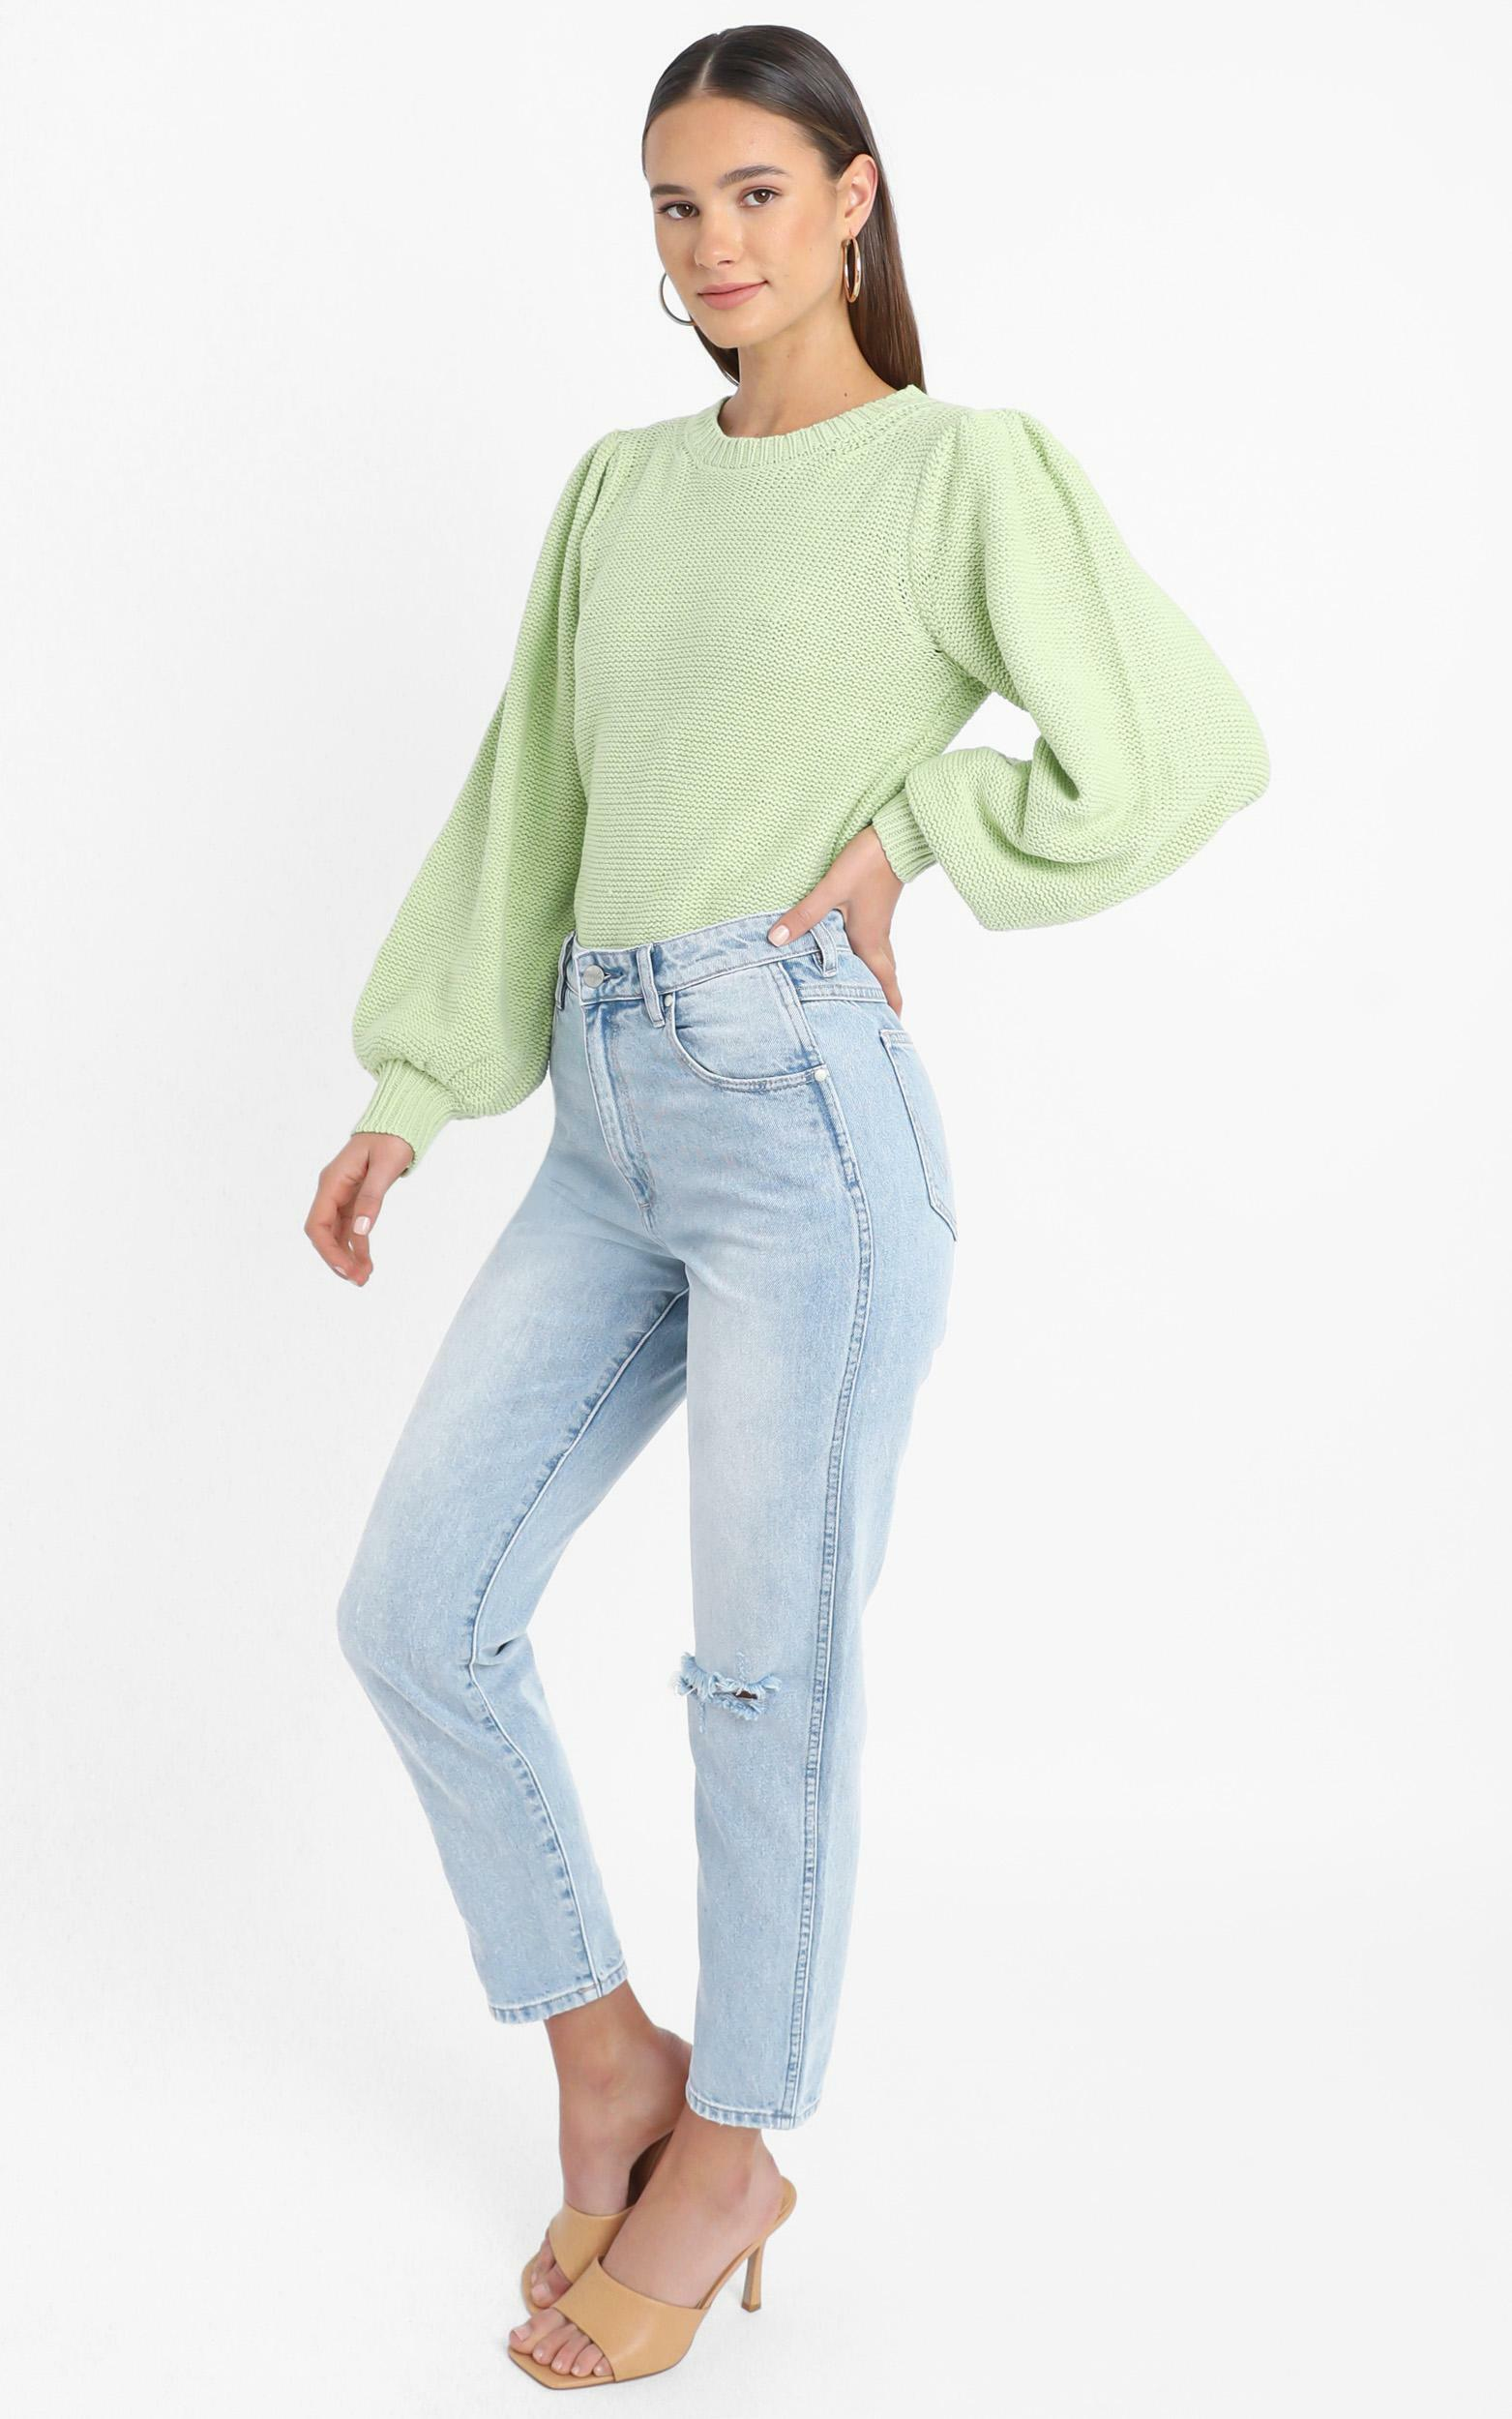 Safia Knit Jumper in Green - 12 (L), Green, hi-res image number null